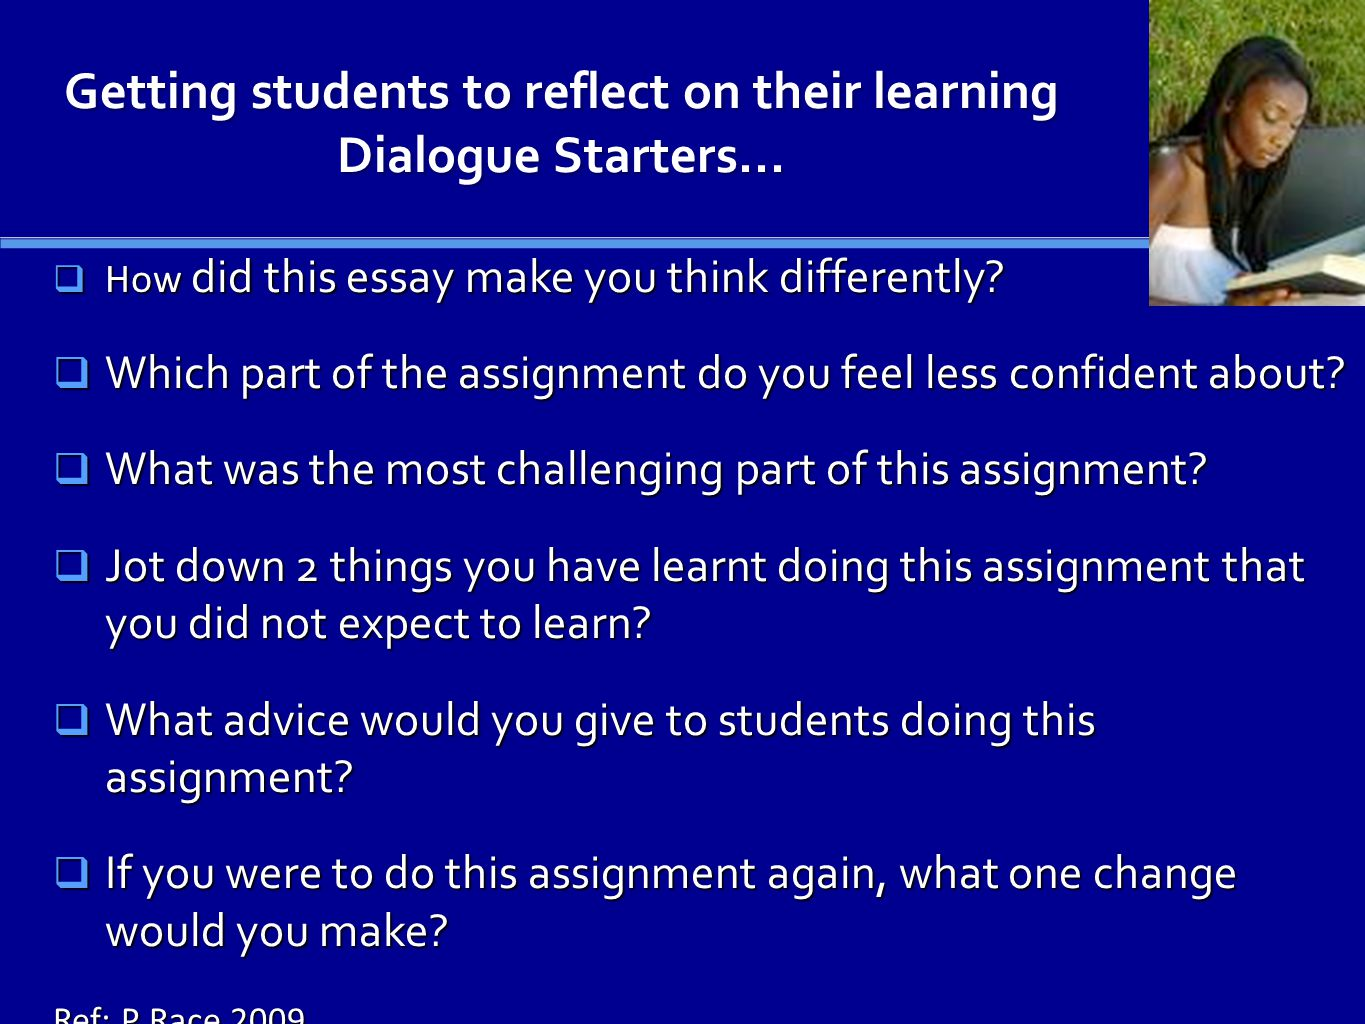 Getting students to reflect on their learning Dialogue Starters...